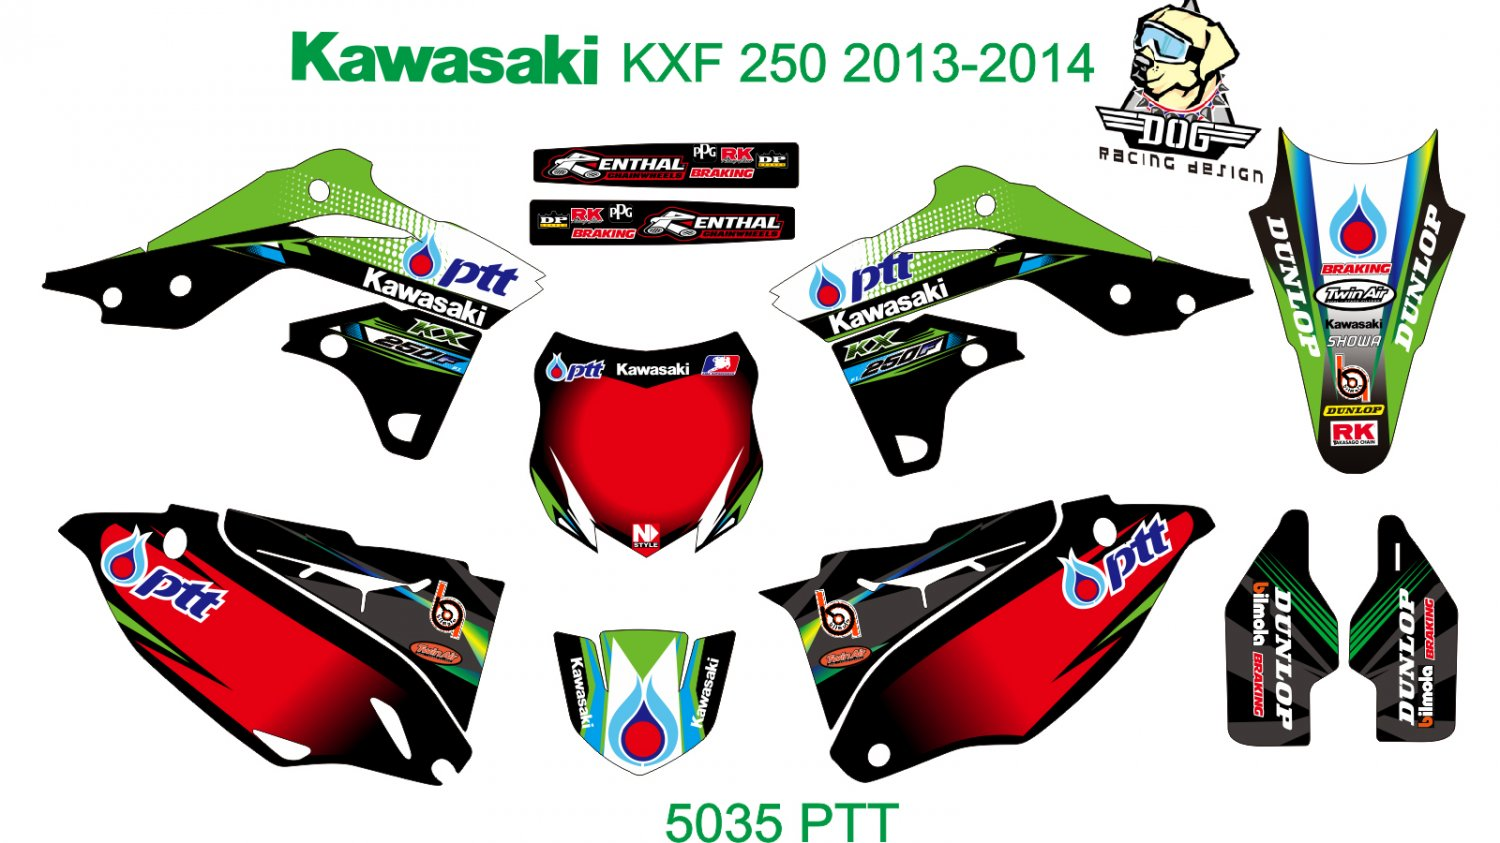 KAWASAKI KXF 250 2013-2014 GRAPHIC DECAL KIT CODE.5035